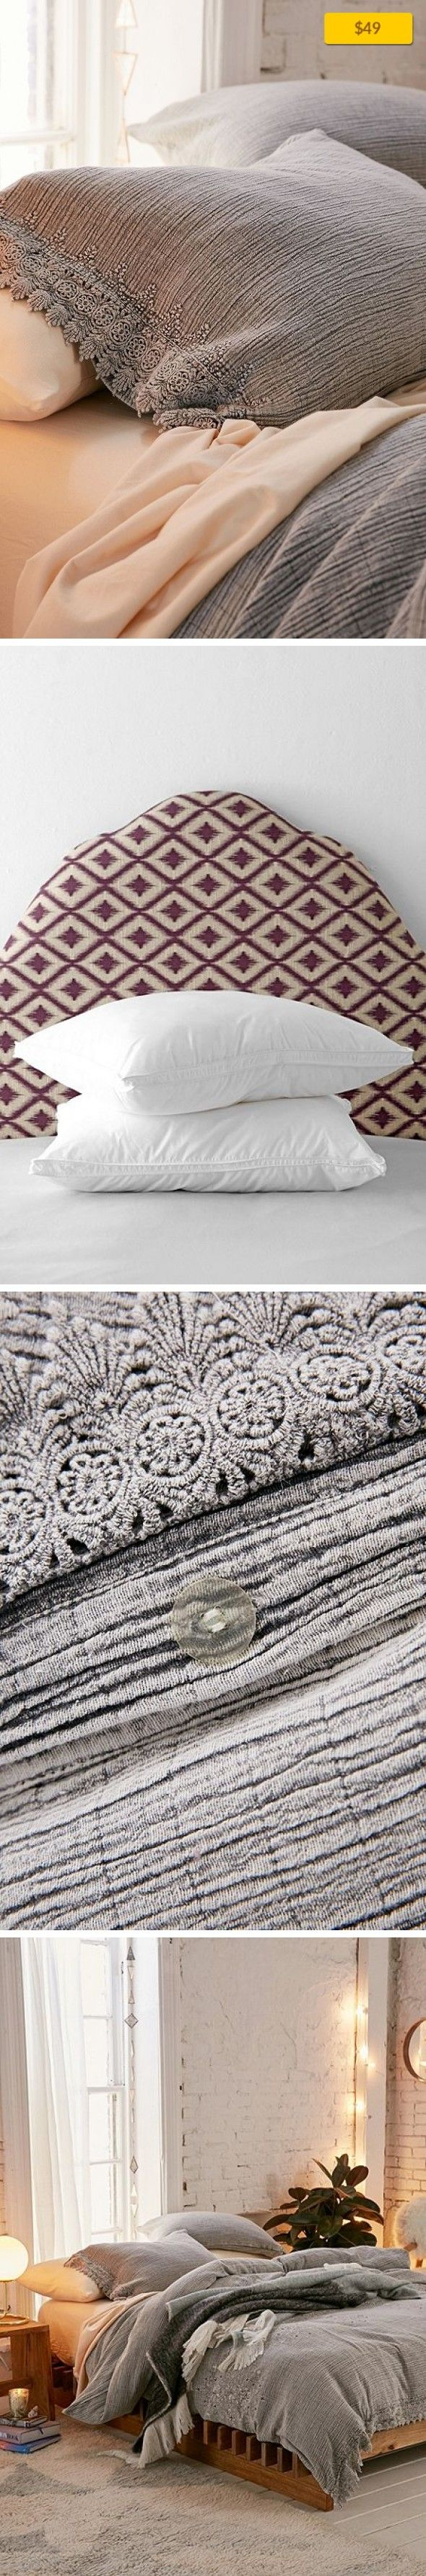 """Cassia Embroidered Sham Set Apartment, Bedding, Pillowcases + Shams   Set of 2 pillow shams made from gauzy cotton + complete with a lace-inspired trim we love. Perfect for an update to any bedding! Content + Care - Set of 2 - Cotton - Machine wash - Imported Size - Dimensions: 21""""l x 27""""w"""